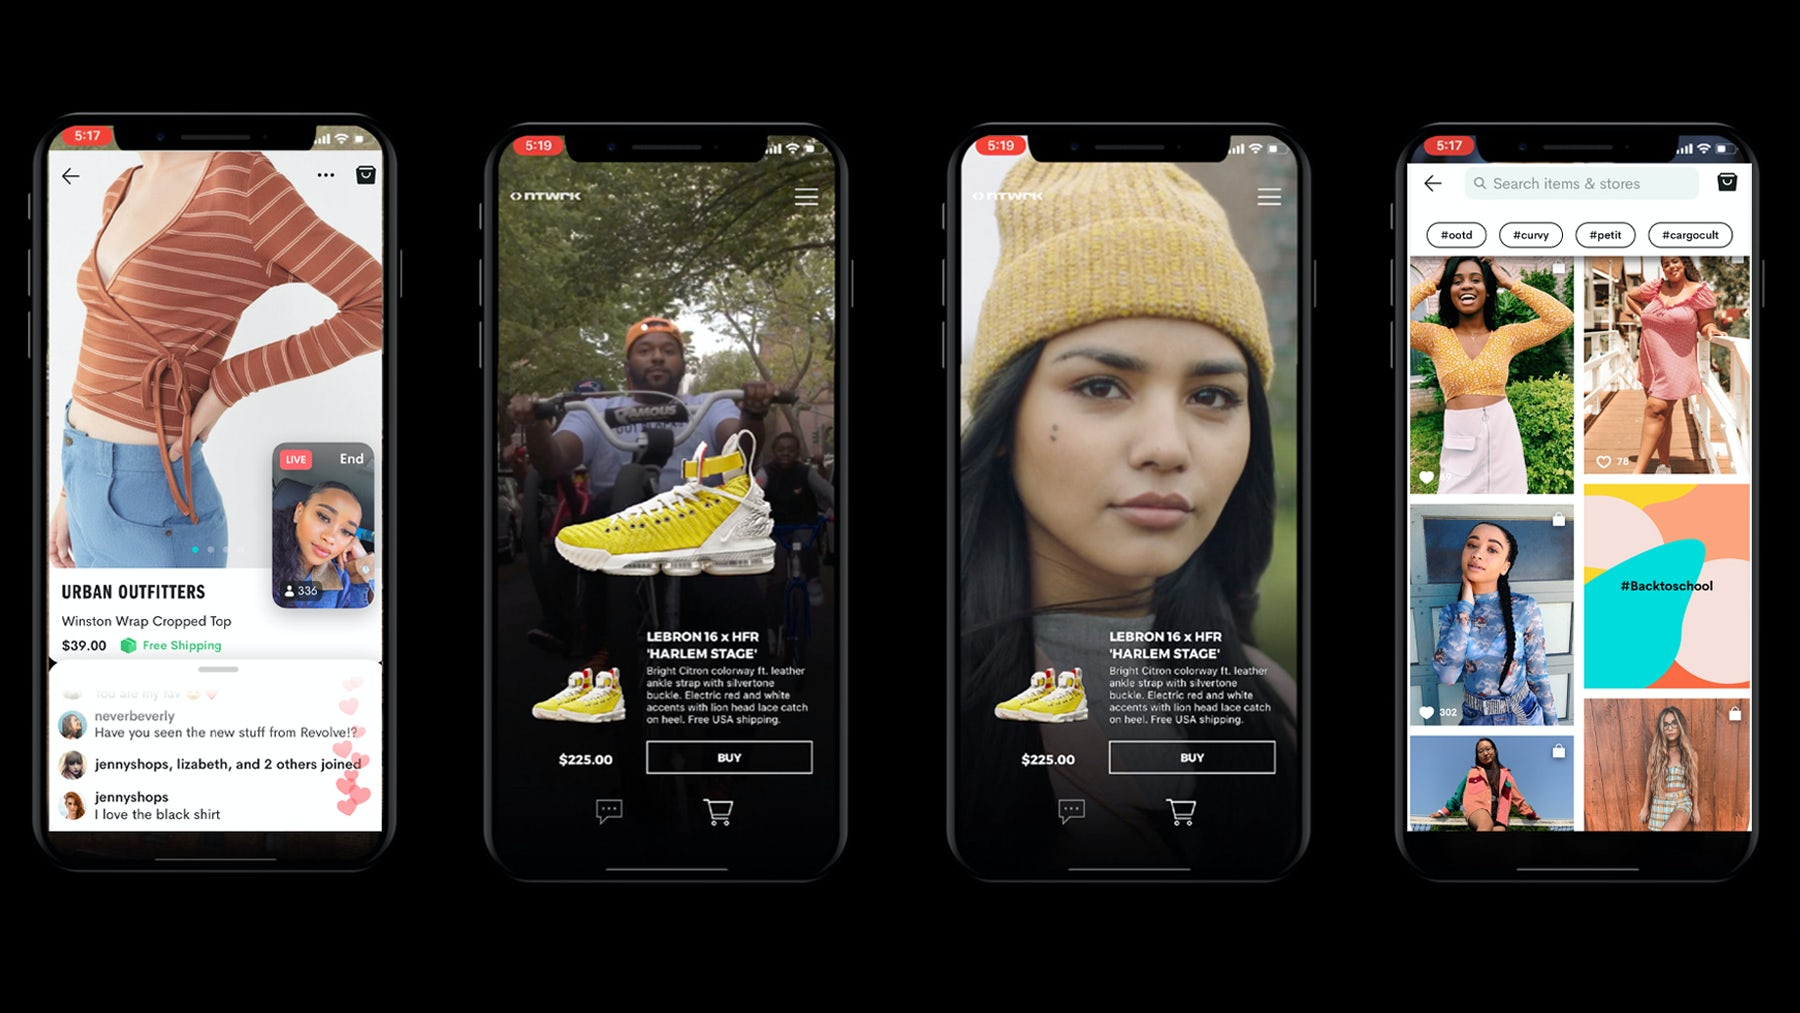 Live Stream Apps Are Changing the Way People Shop